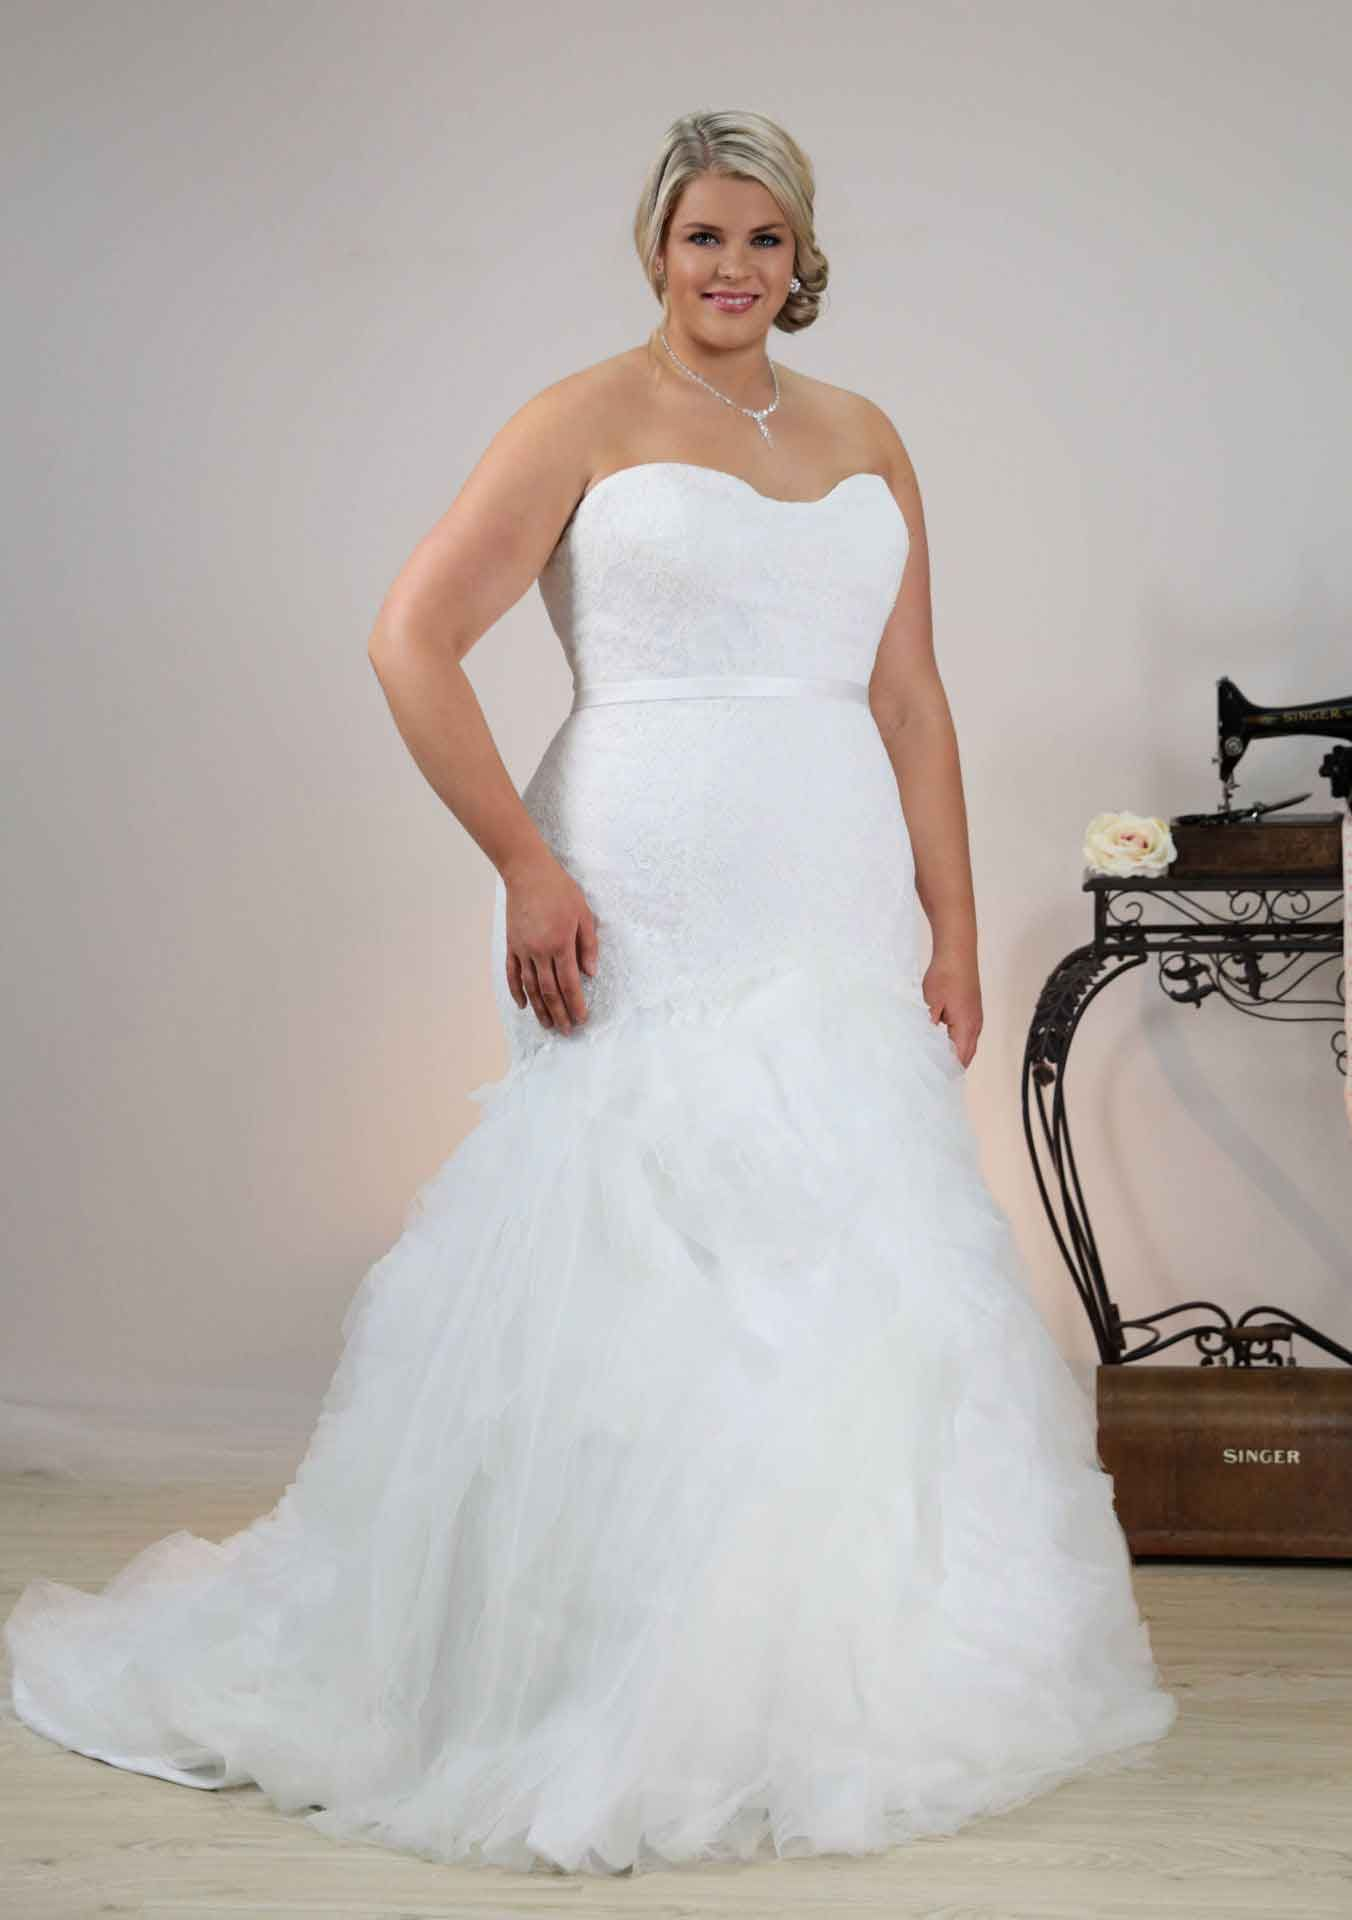 Couture Wedding Dress Wedding And Vow Renewal Pinterest